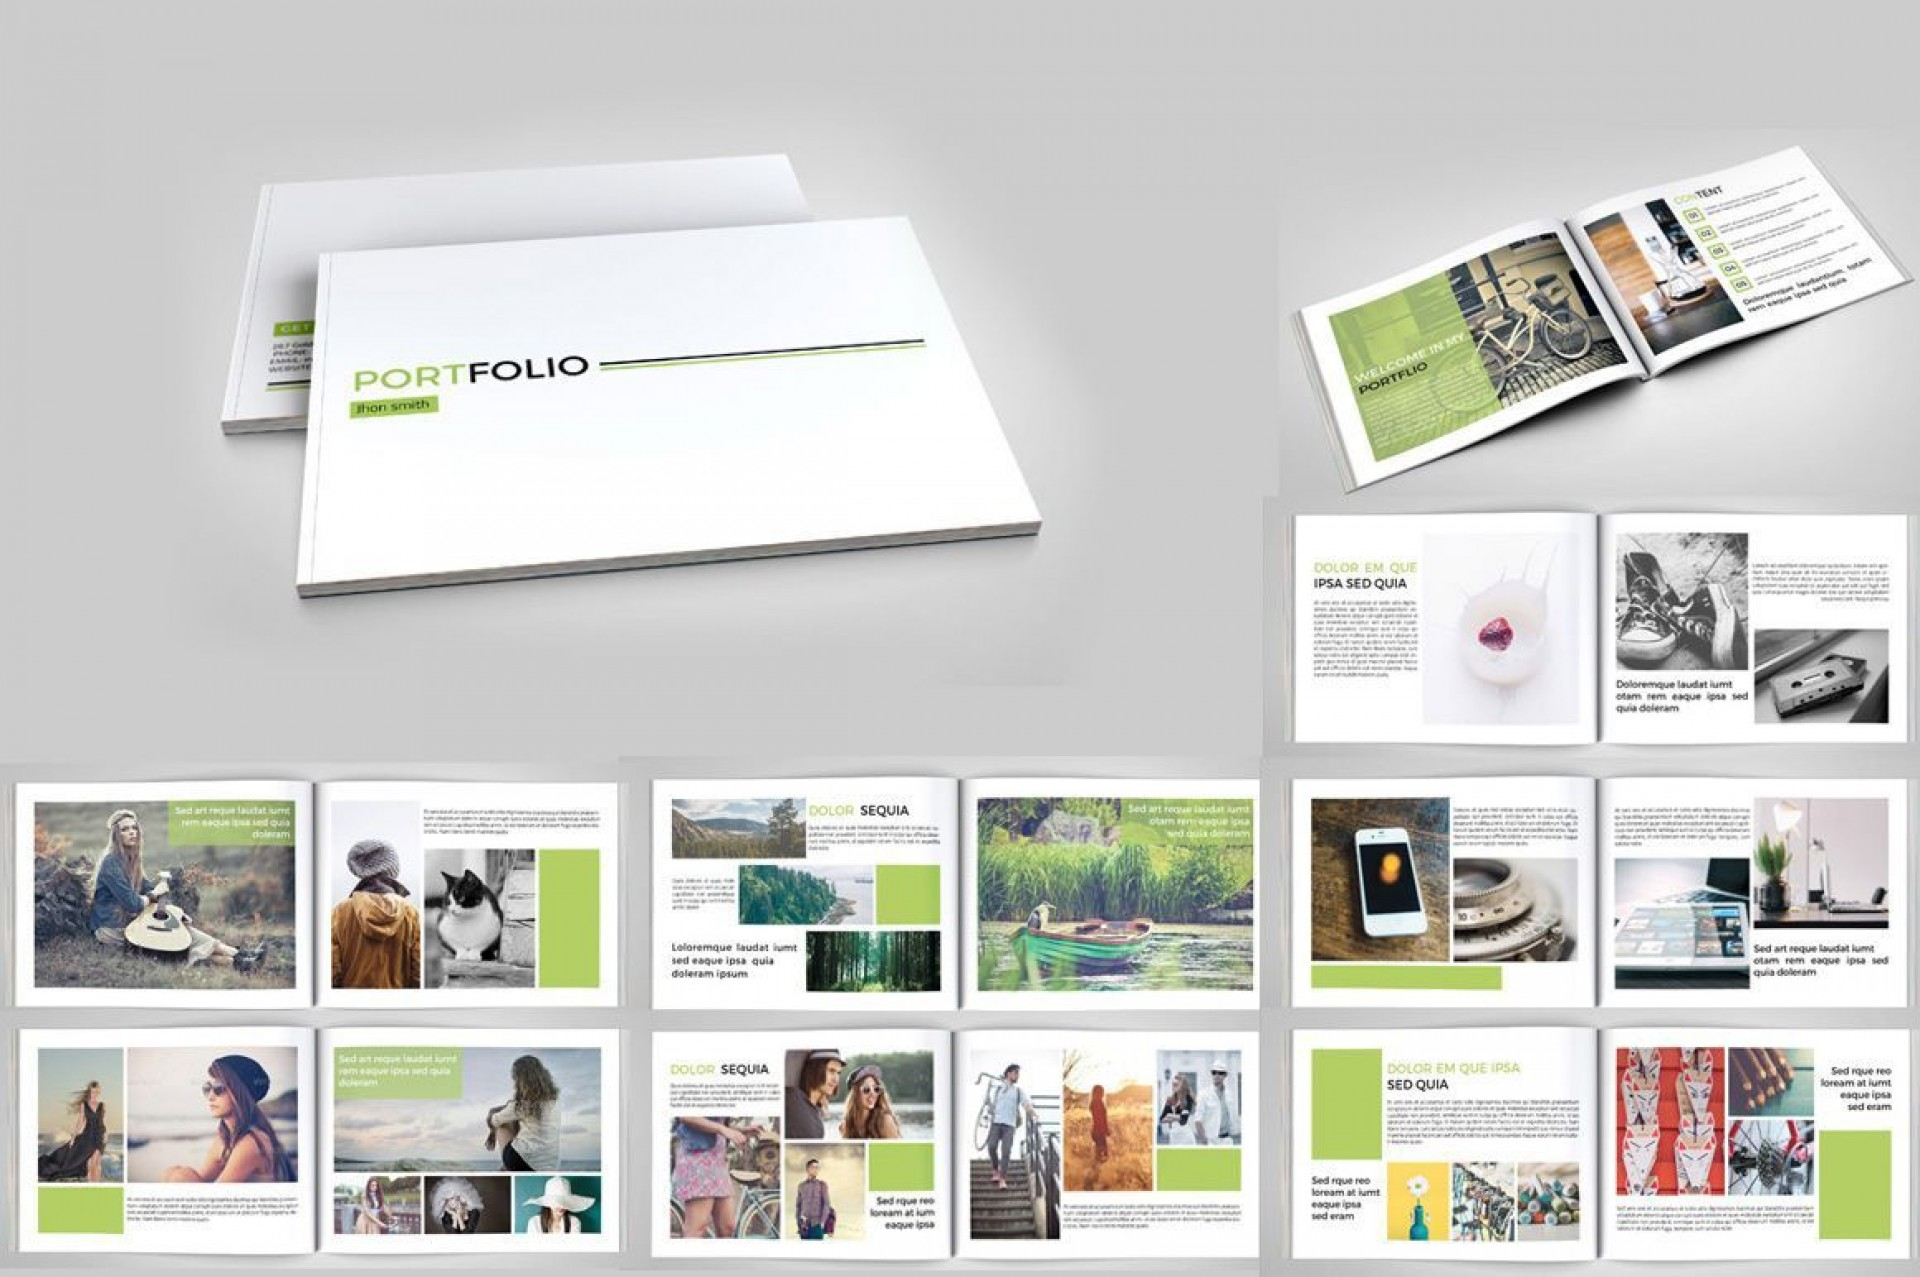 001 Outstanding In Design Portfolio Template Example  Templates Interior Layout Indesign Free1920